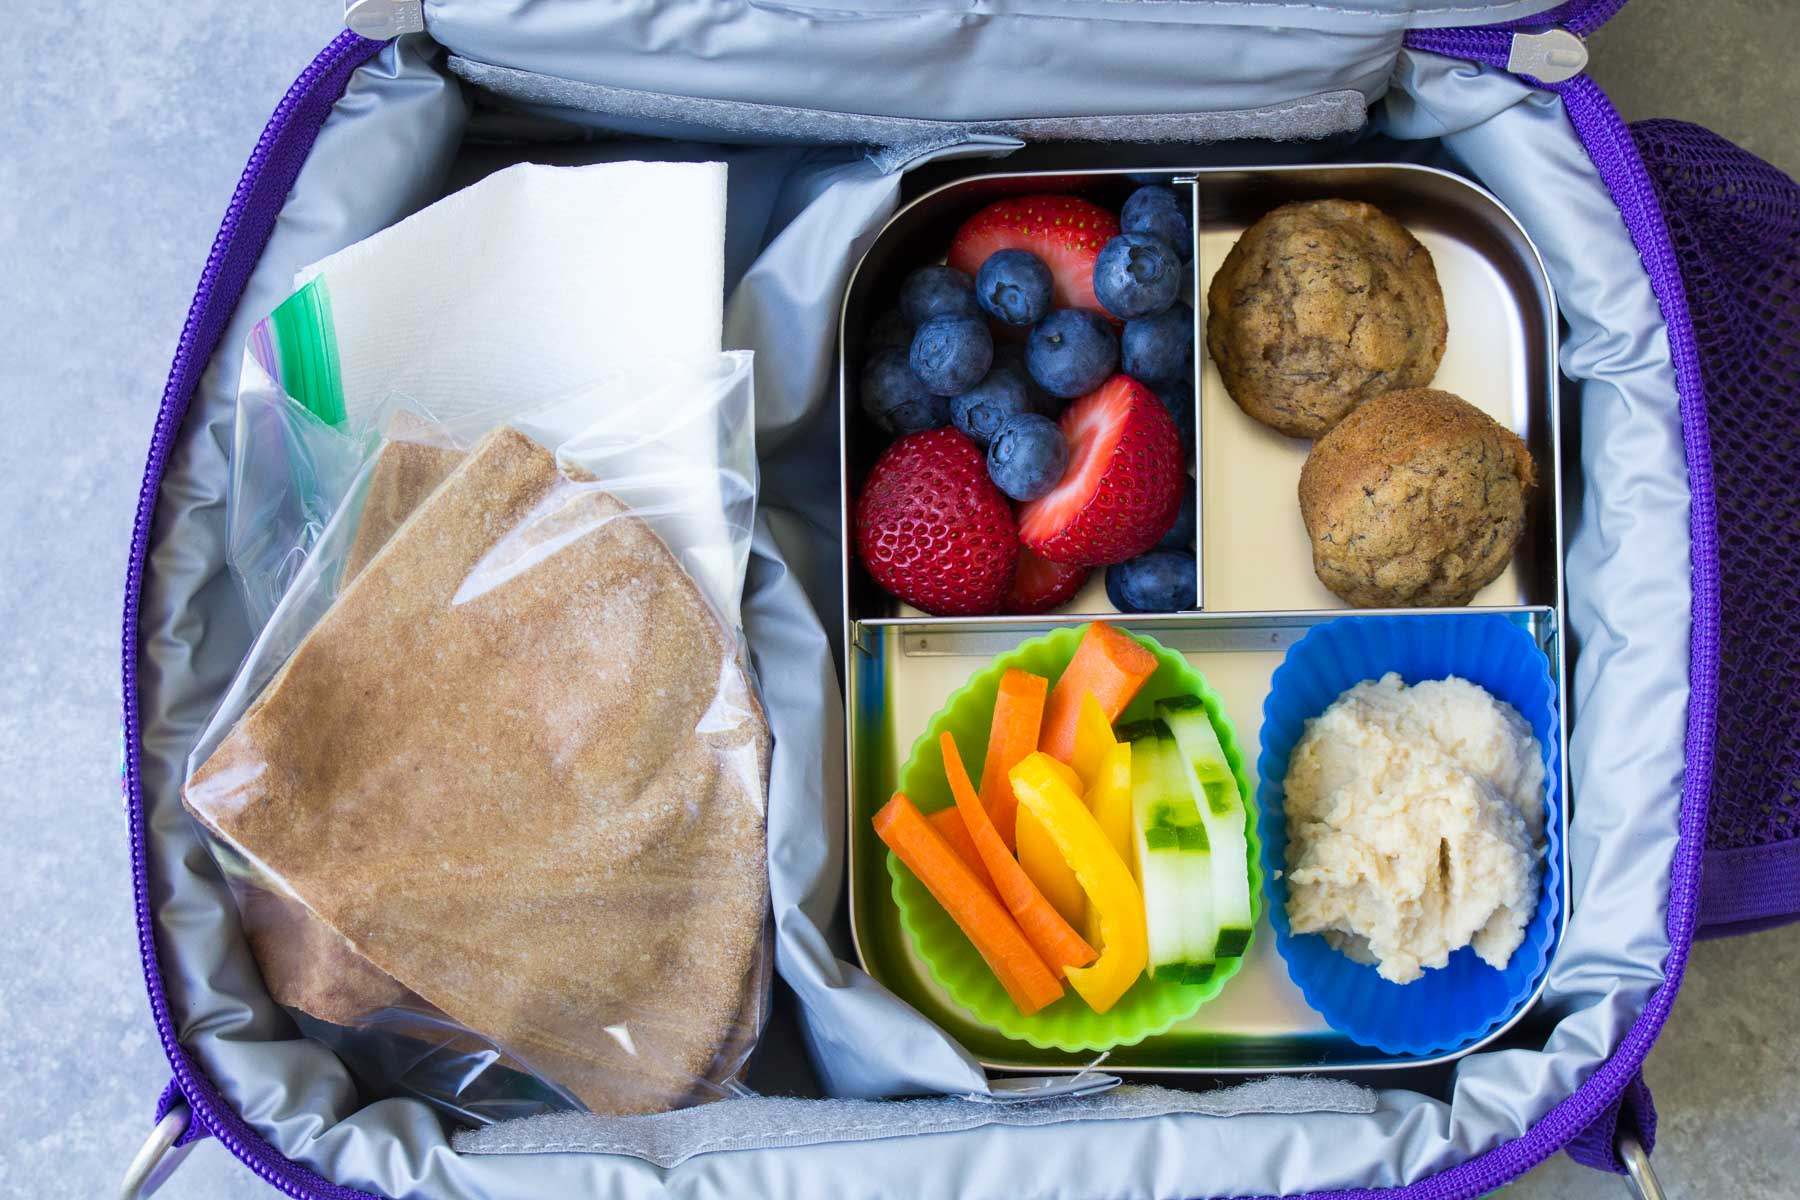 10 More Healthy Lunch Ideas For Kids The School Box Or Home Kristine39s Kitchen